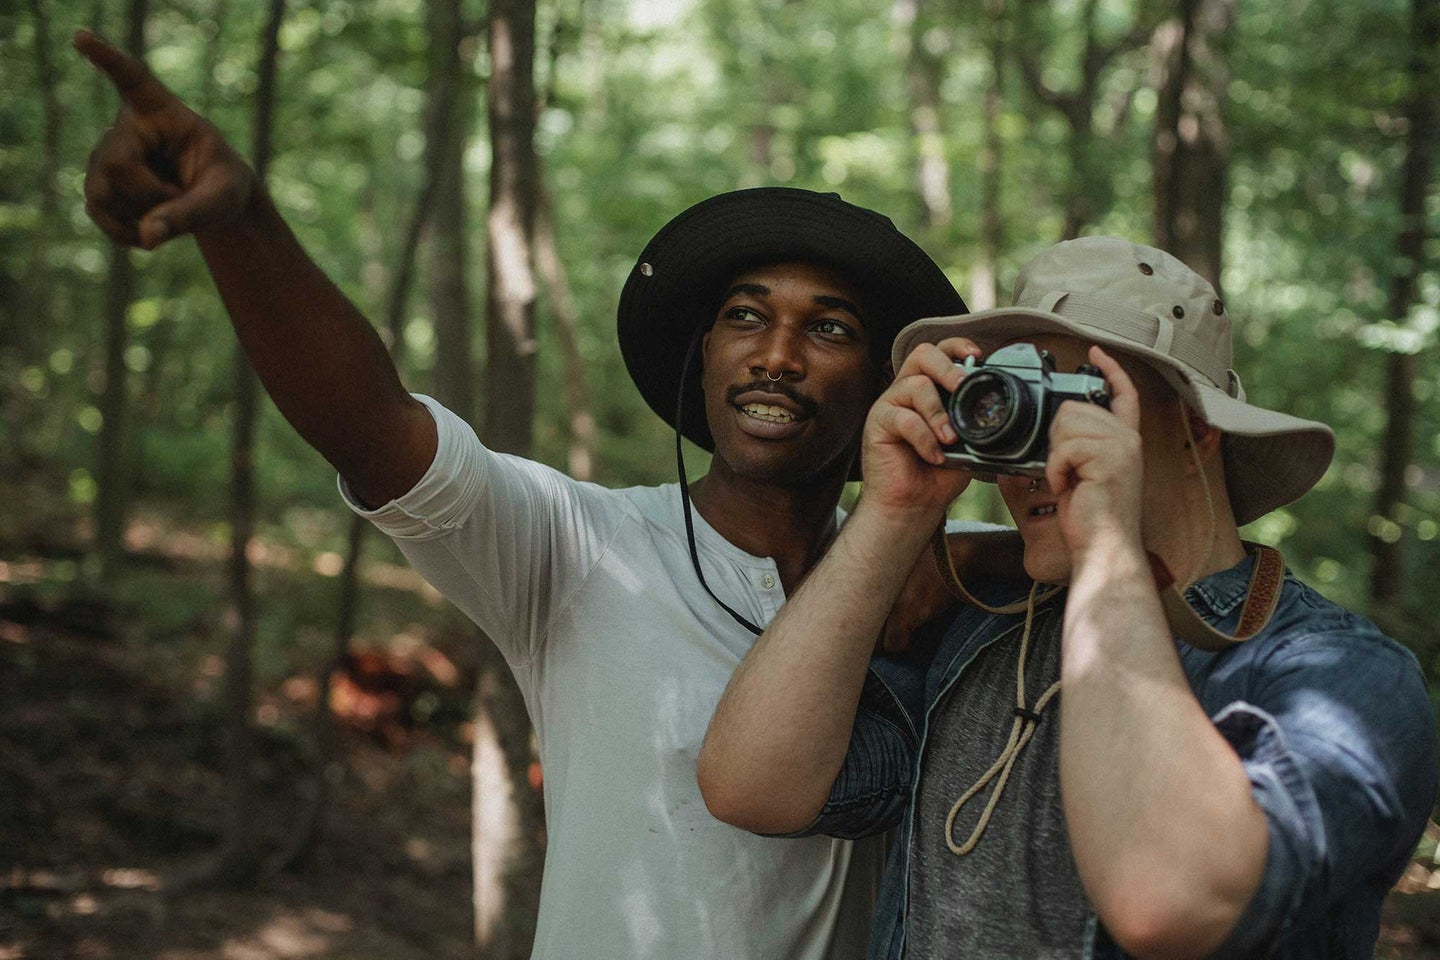 Two men in the woods taking pictures